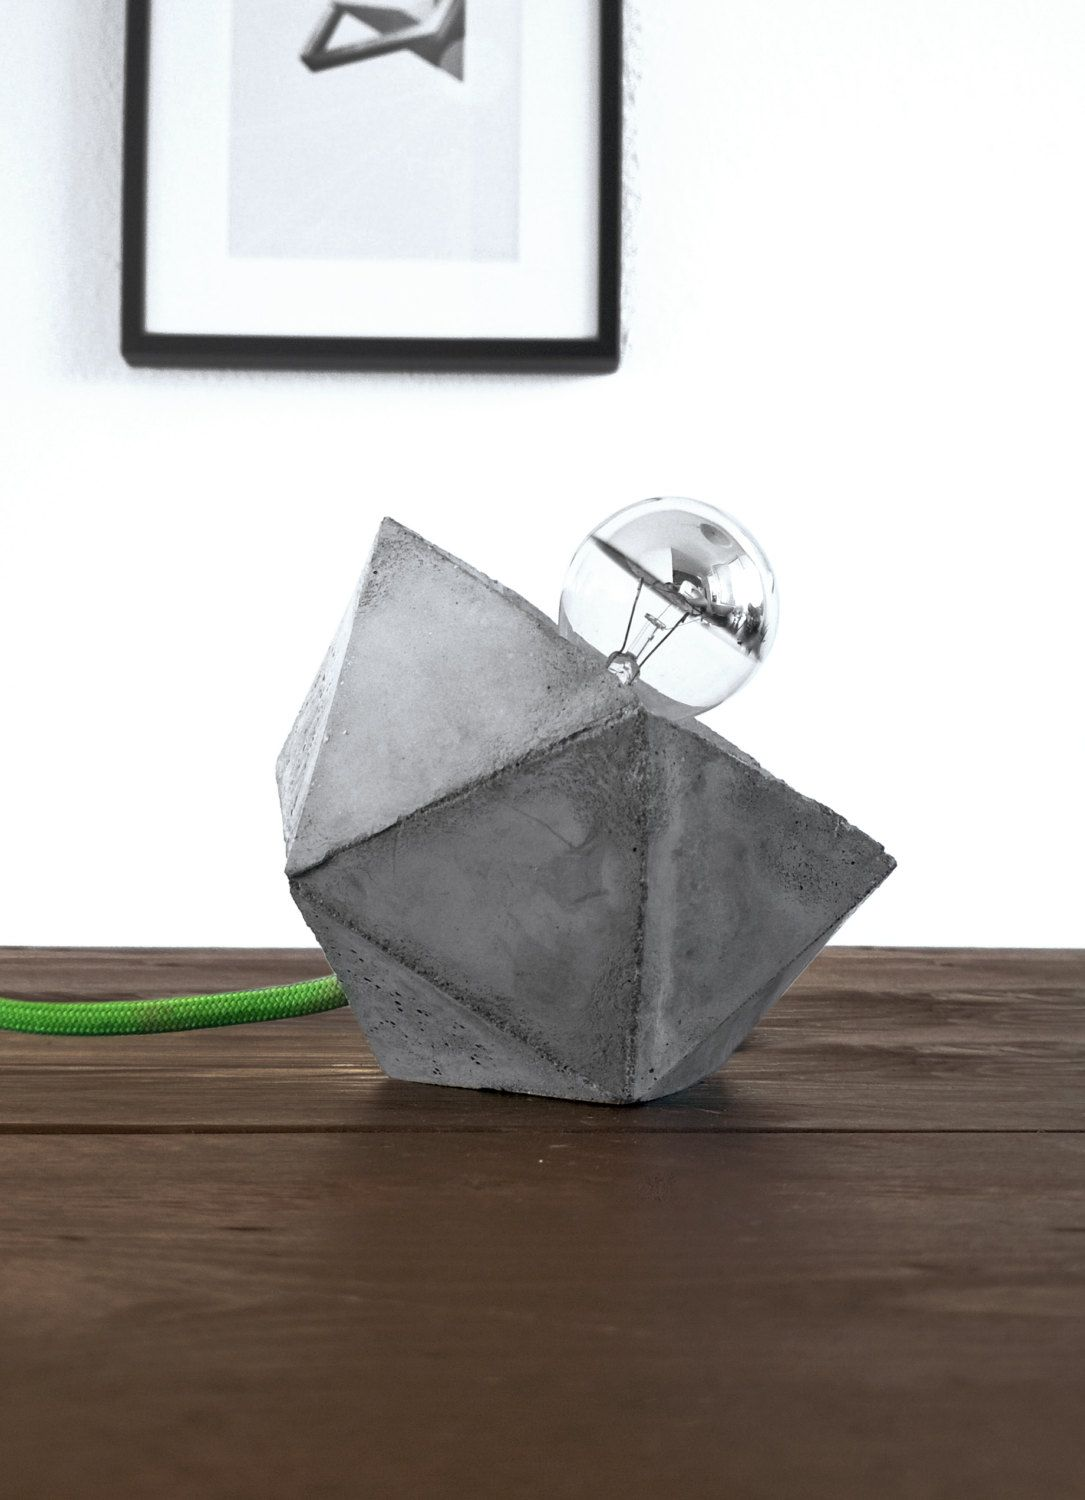 Geometric desk concrete lamp